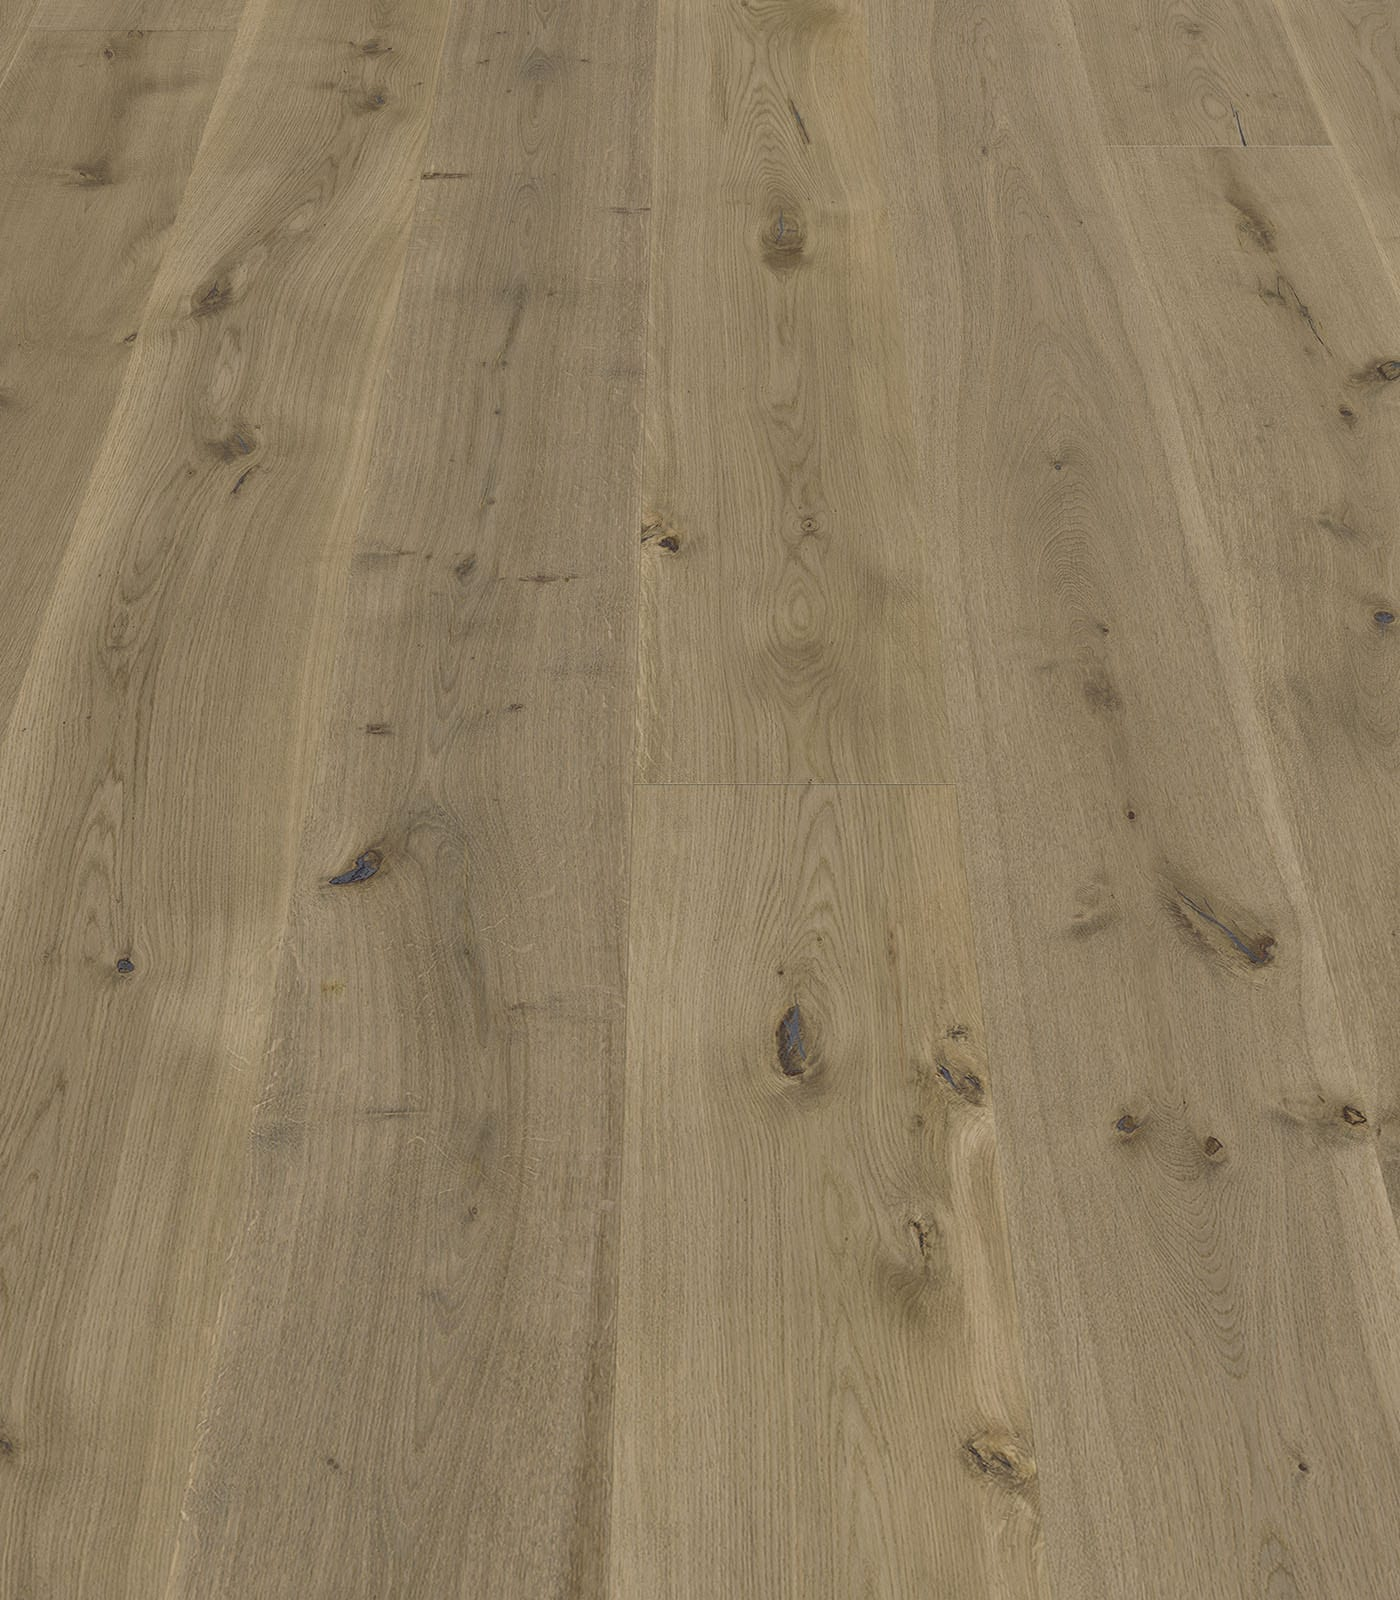 Cairns-European Oak Floors-Lifestyle collection-angle